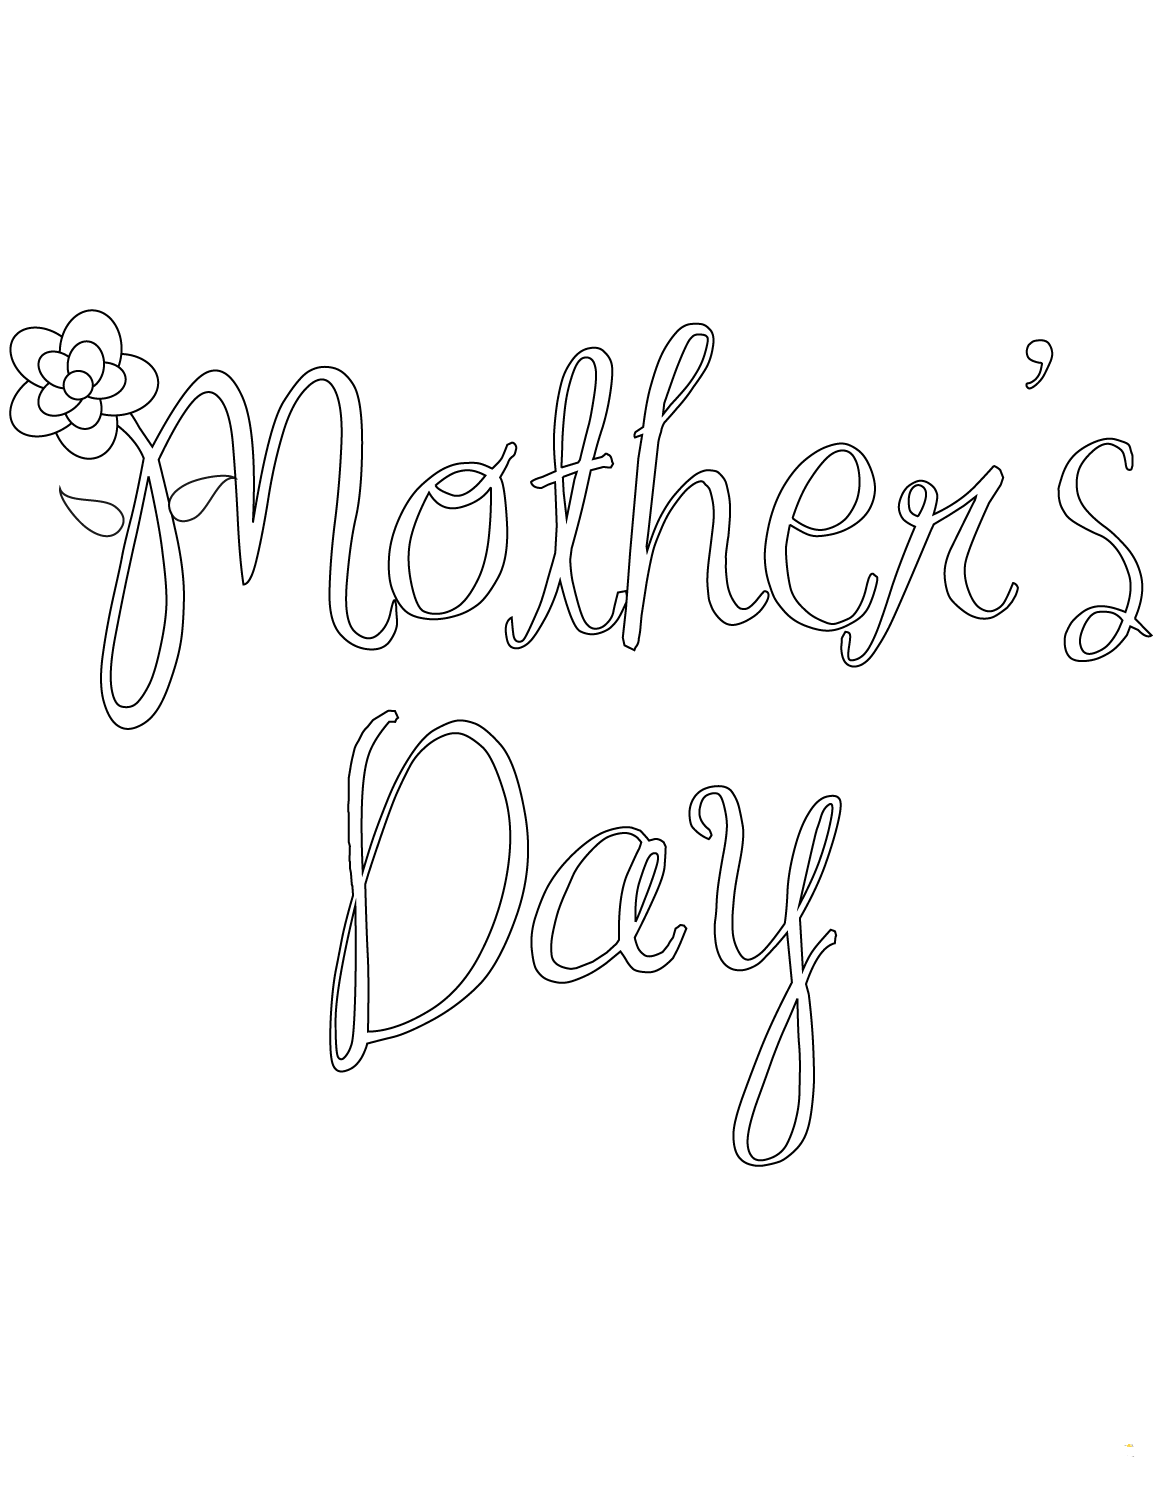 mothers day coloring pages preschool mother39s day homemade card myteachingstationcom day preschool pages coloring mothers